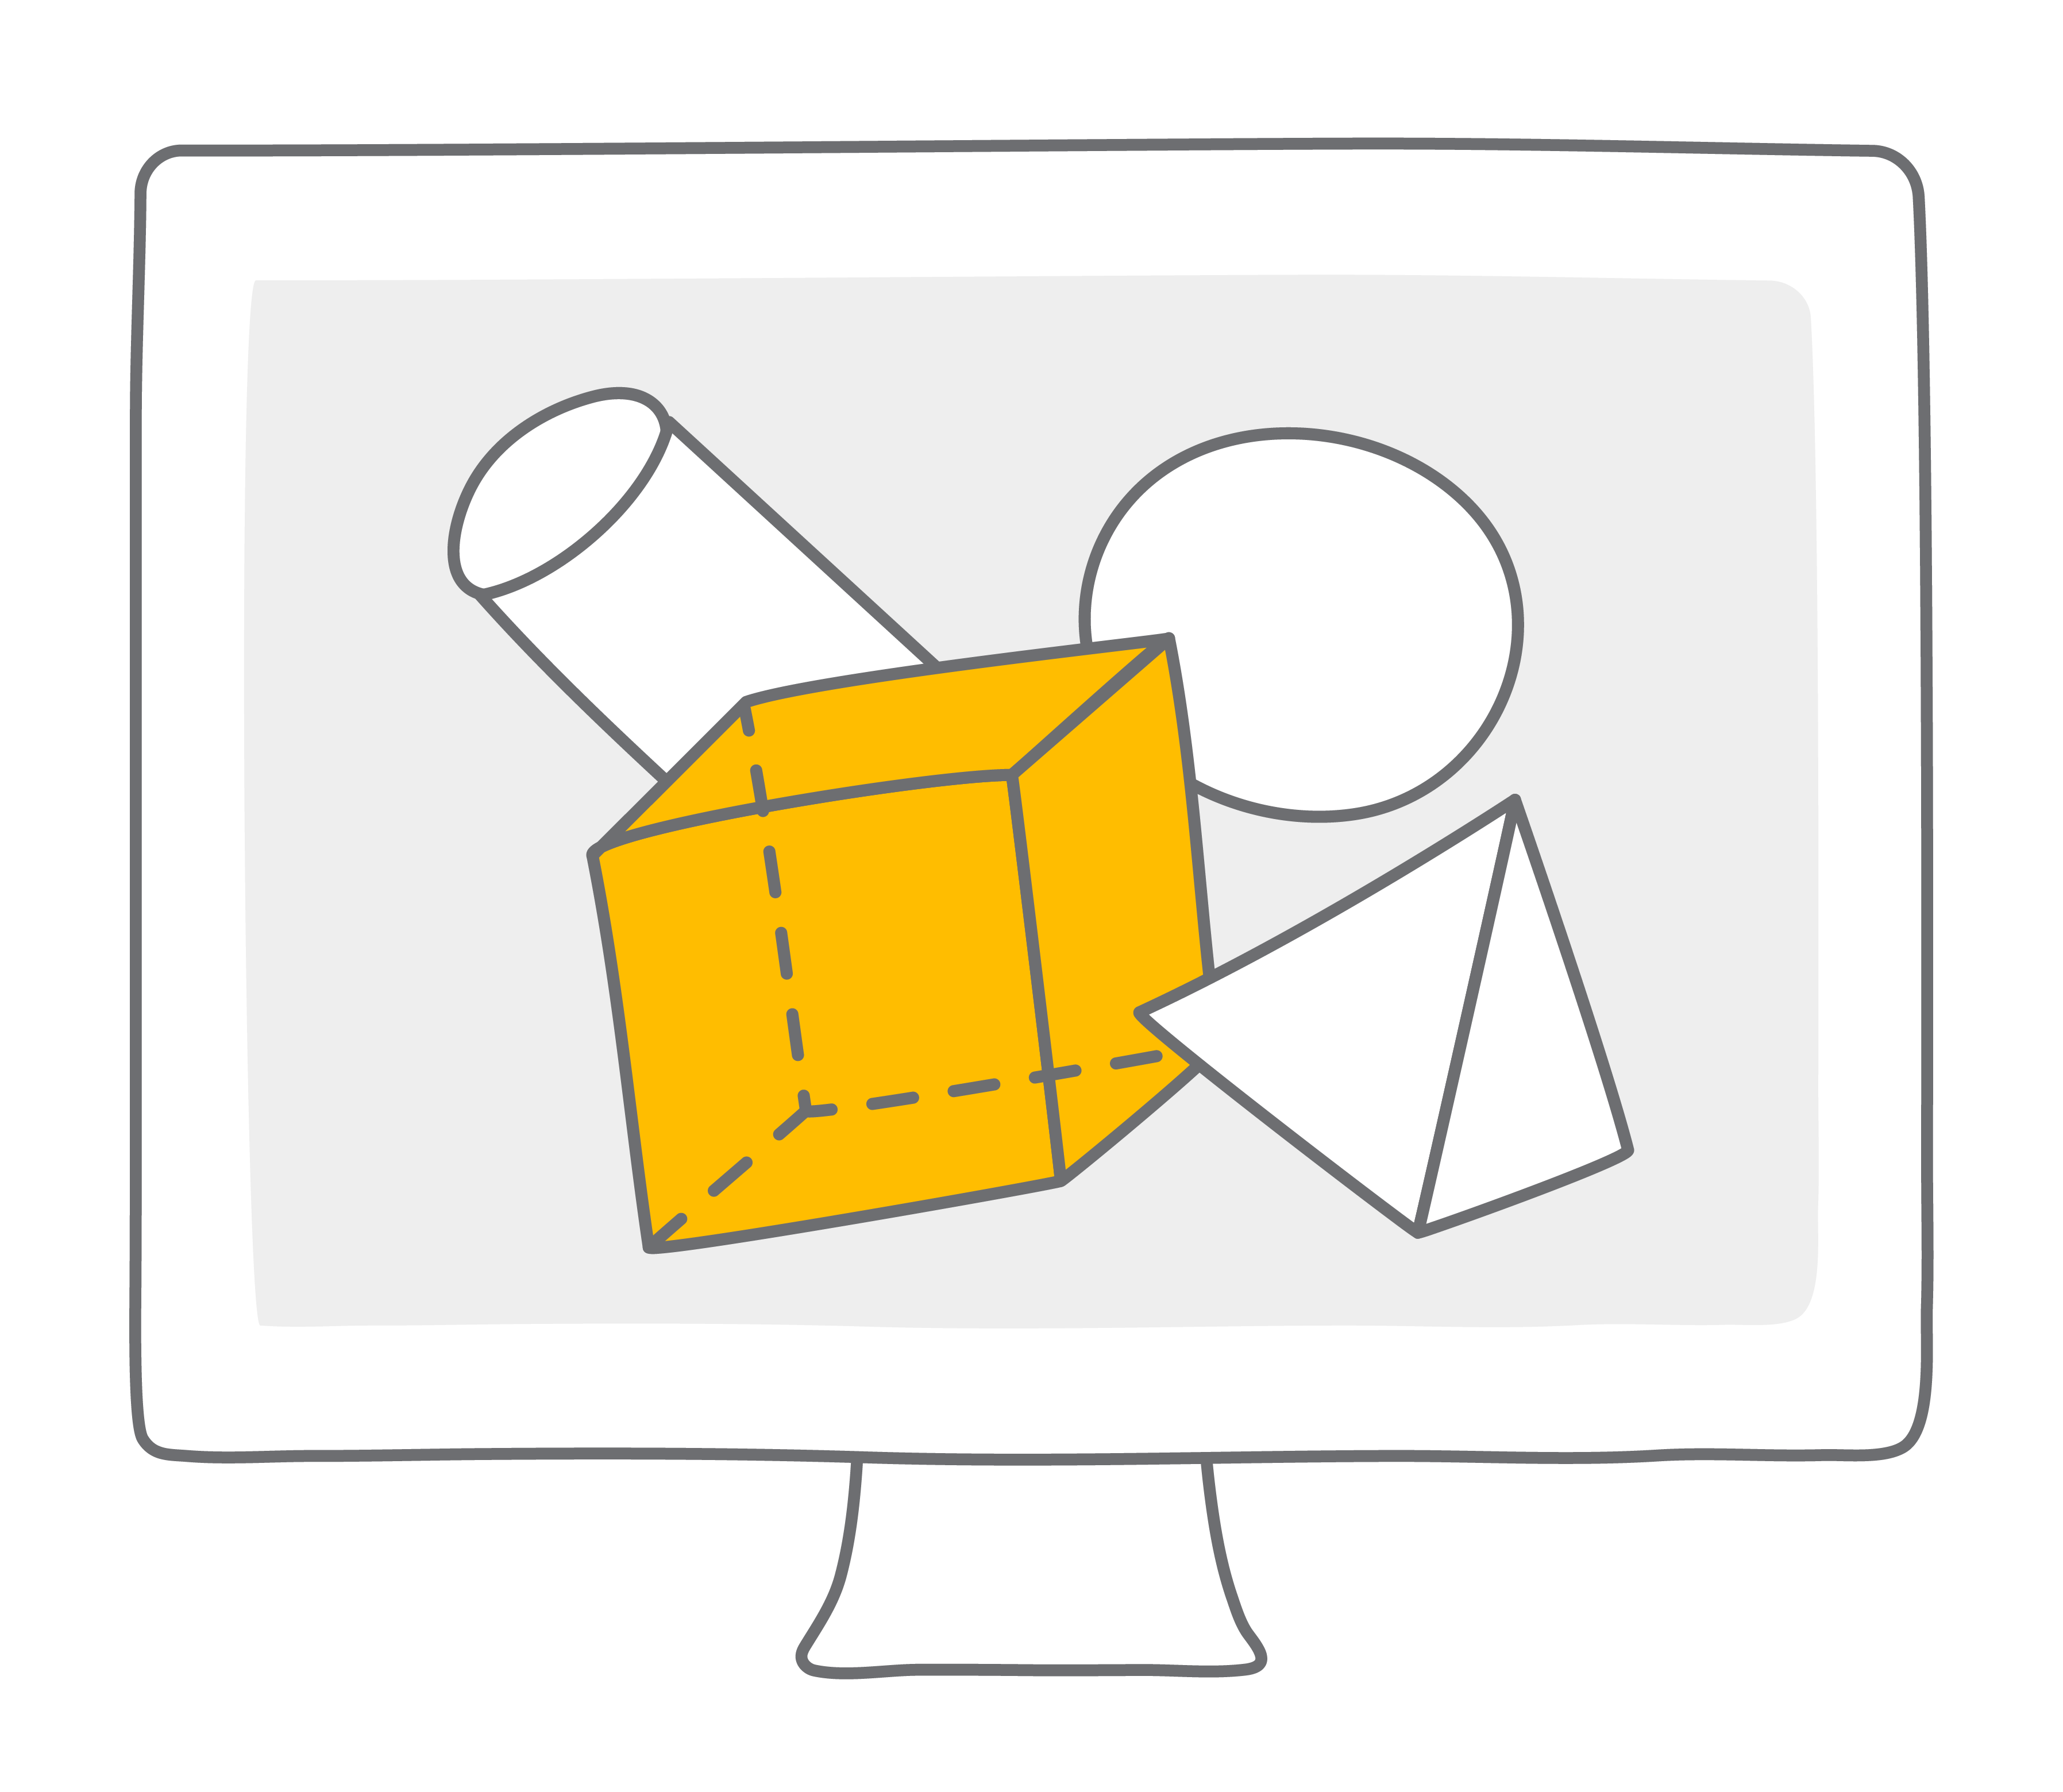 Supply Chain Illustration 02.png